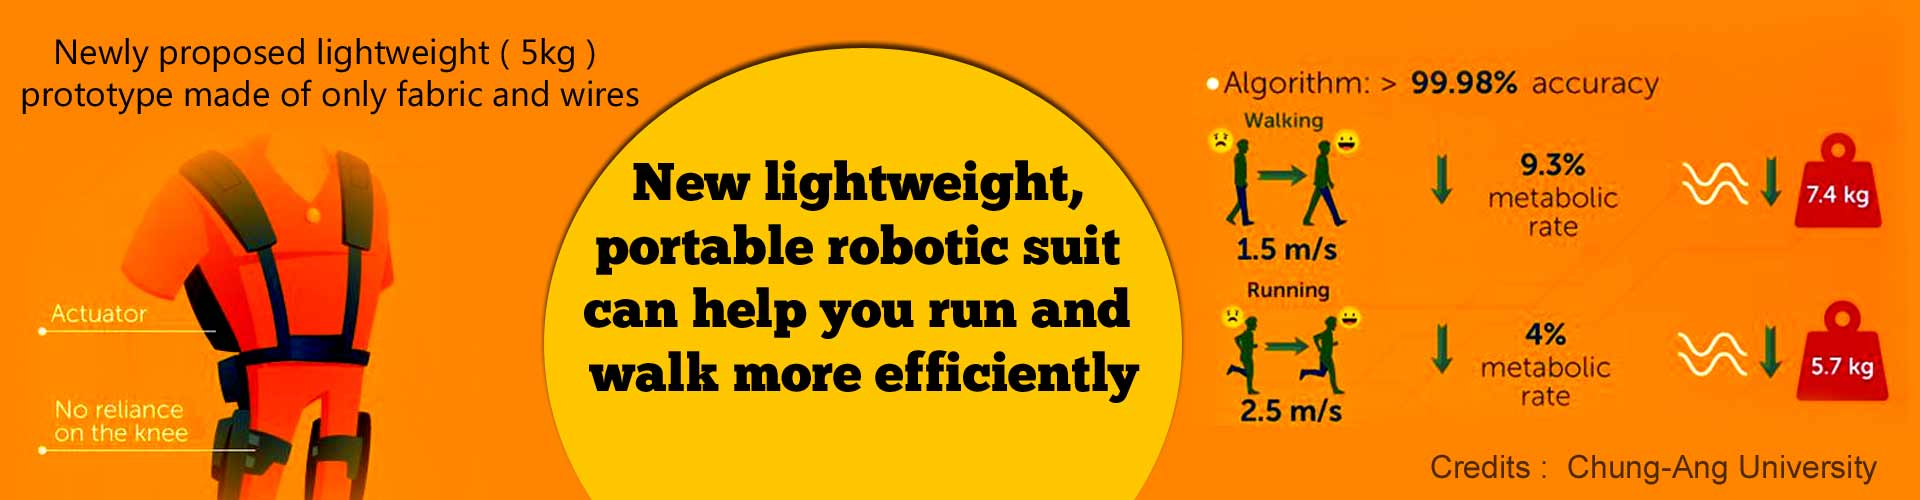 New lightweight, portable robotic suit can help you run and walk more efficiently.